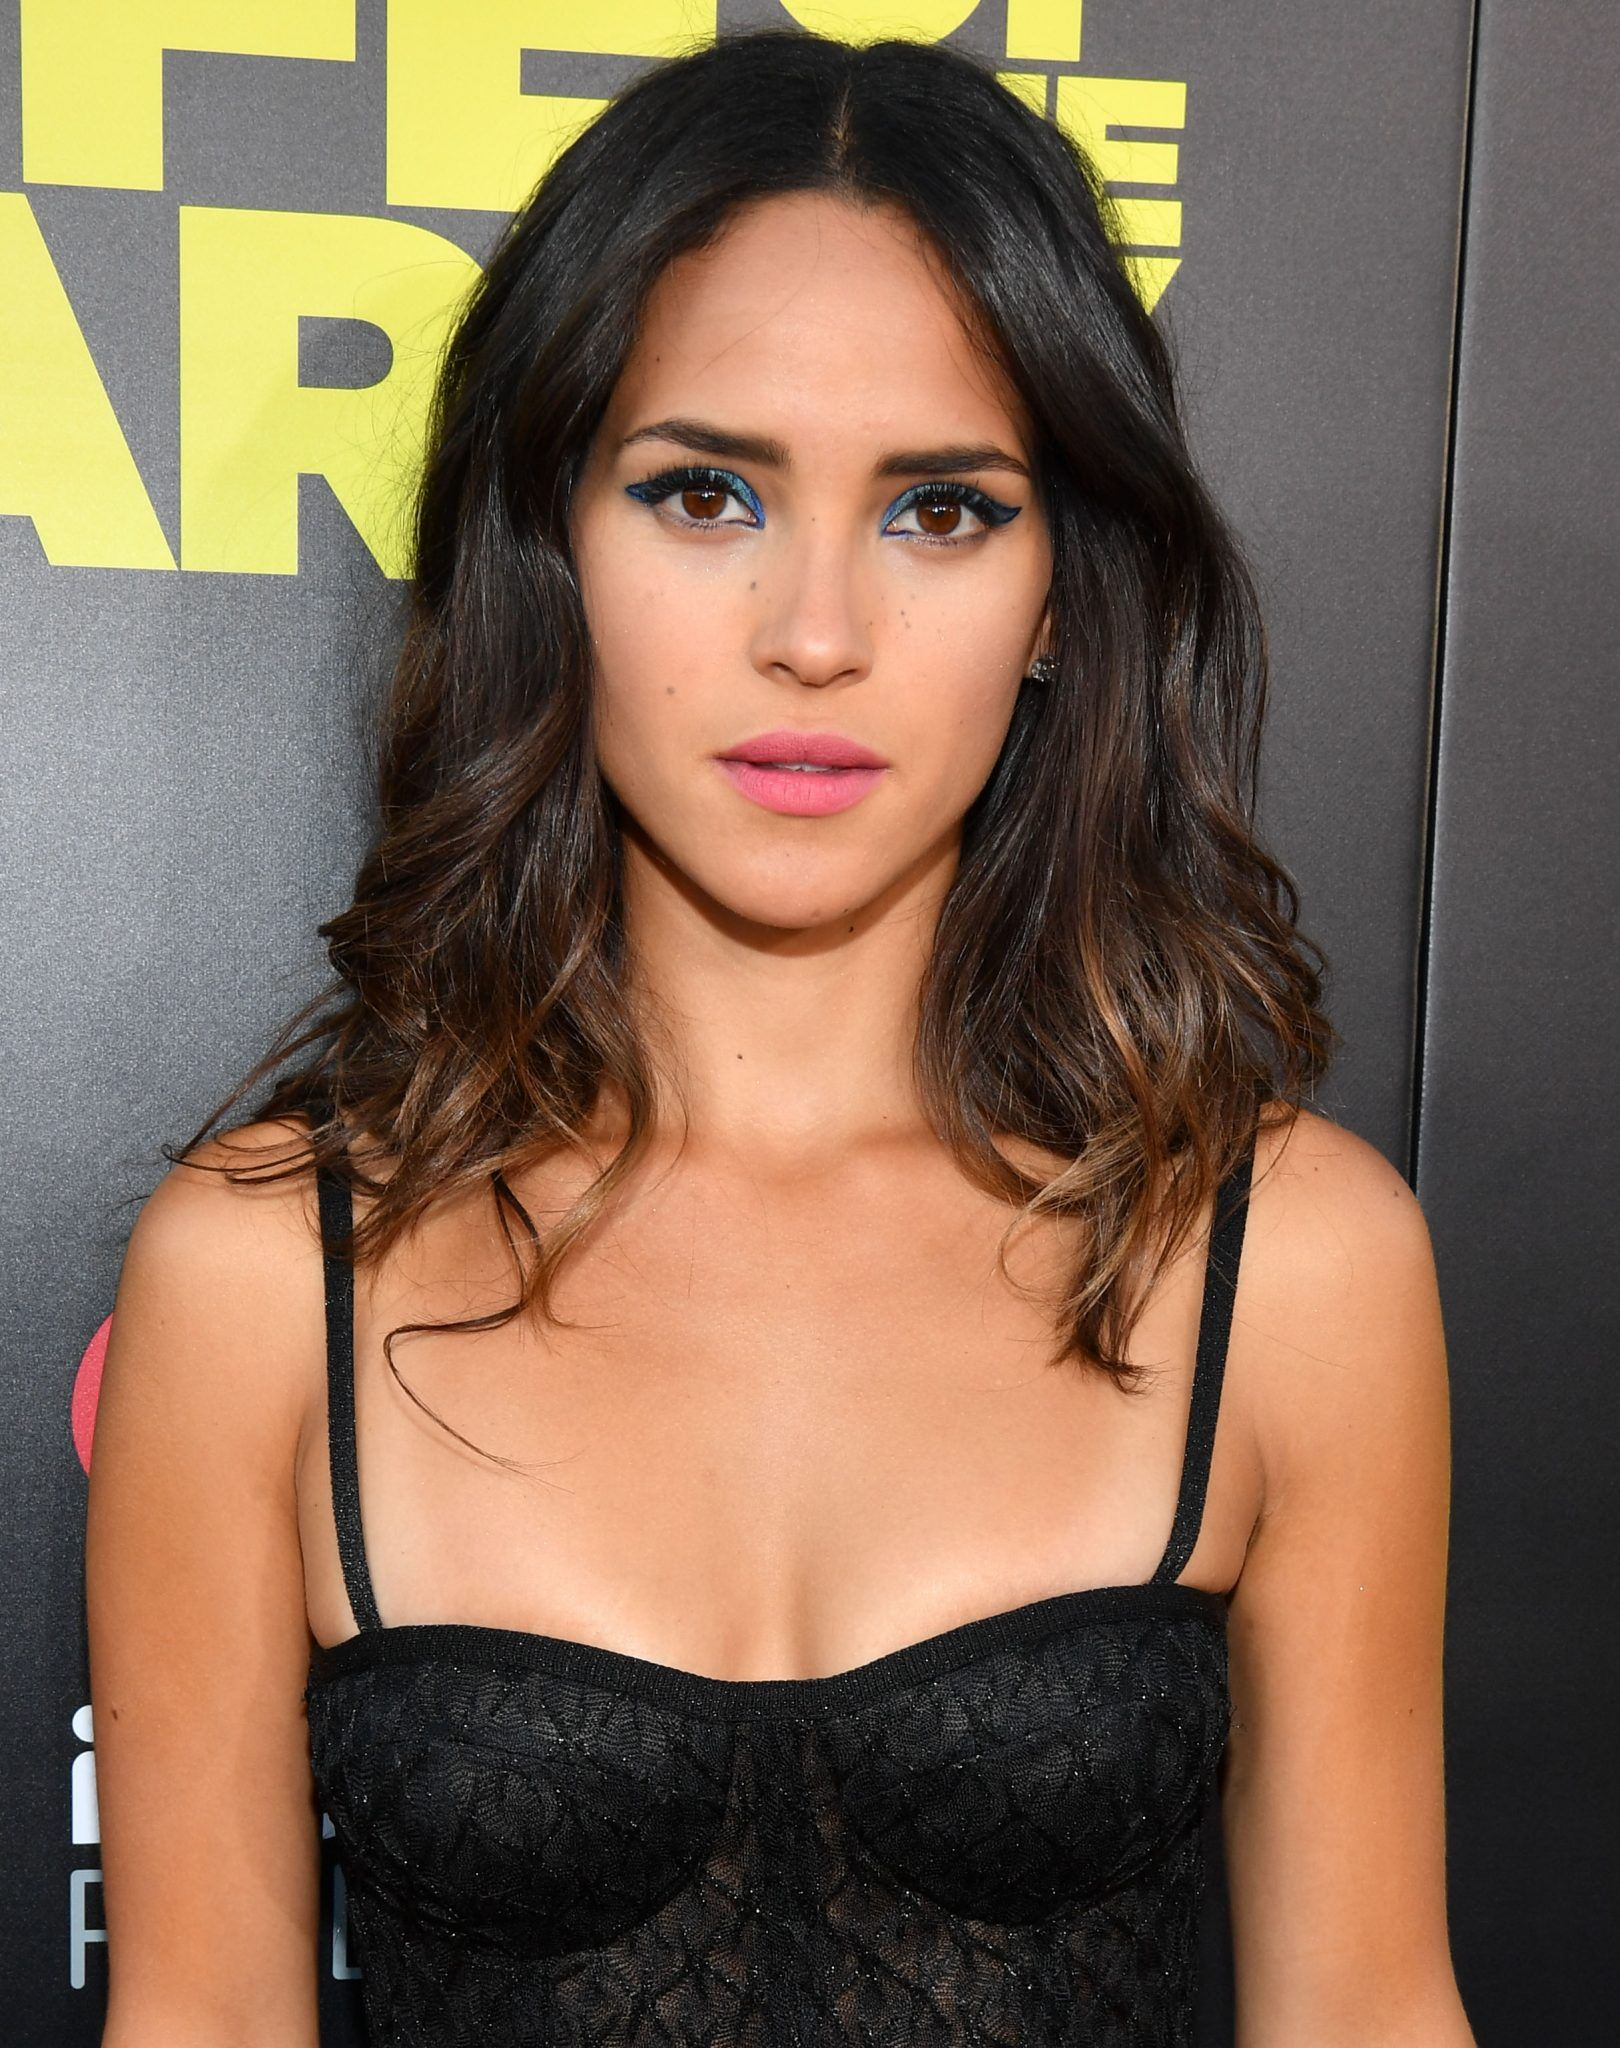 Fappening Pictures Adria Arjona naked photo 2017